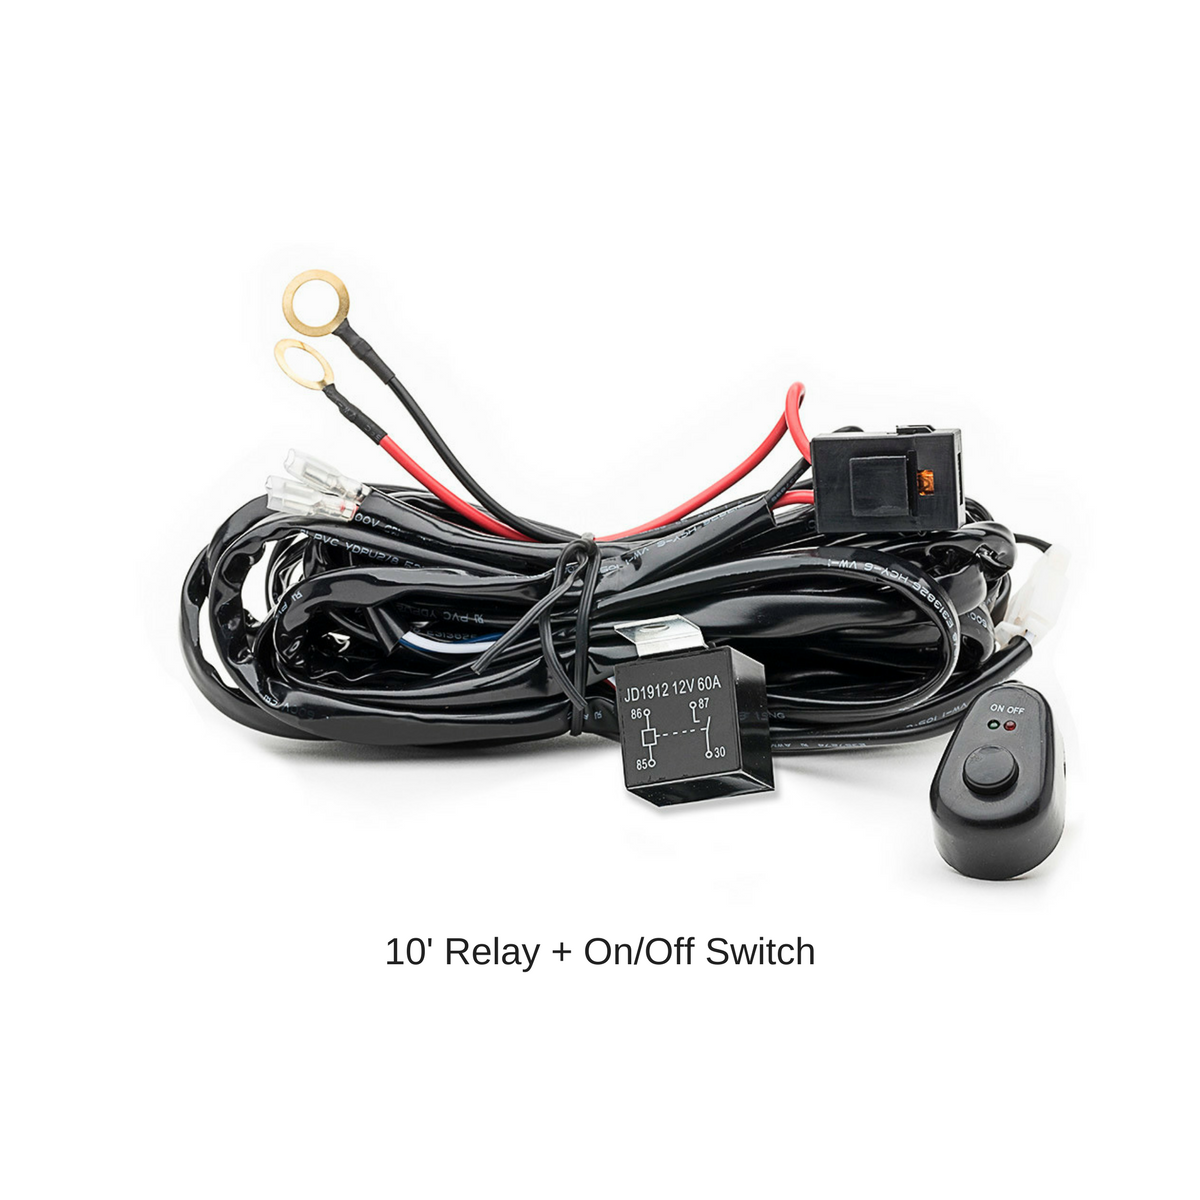 Carbine 12V Relay w/ On/Off Switch